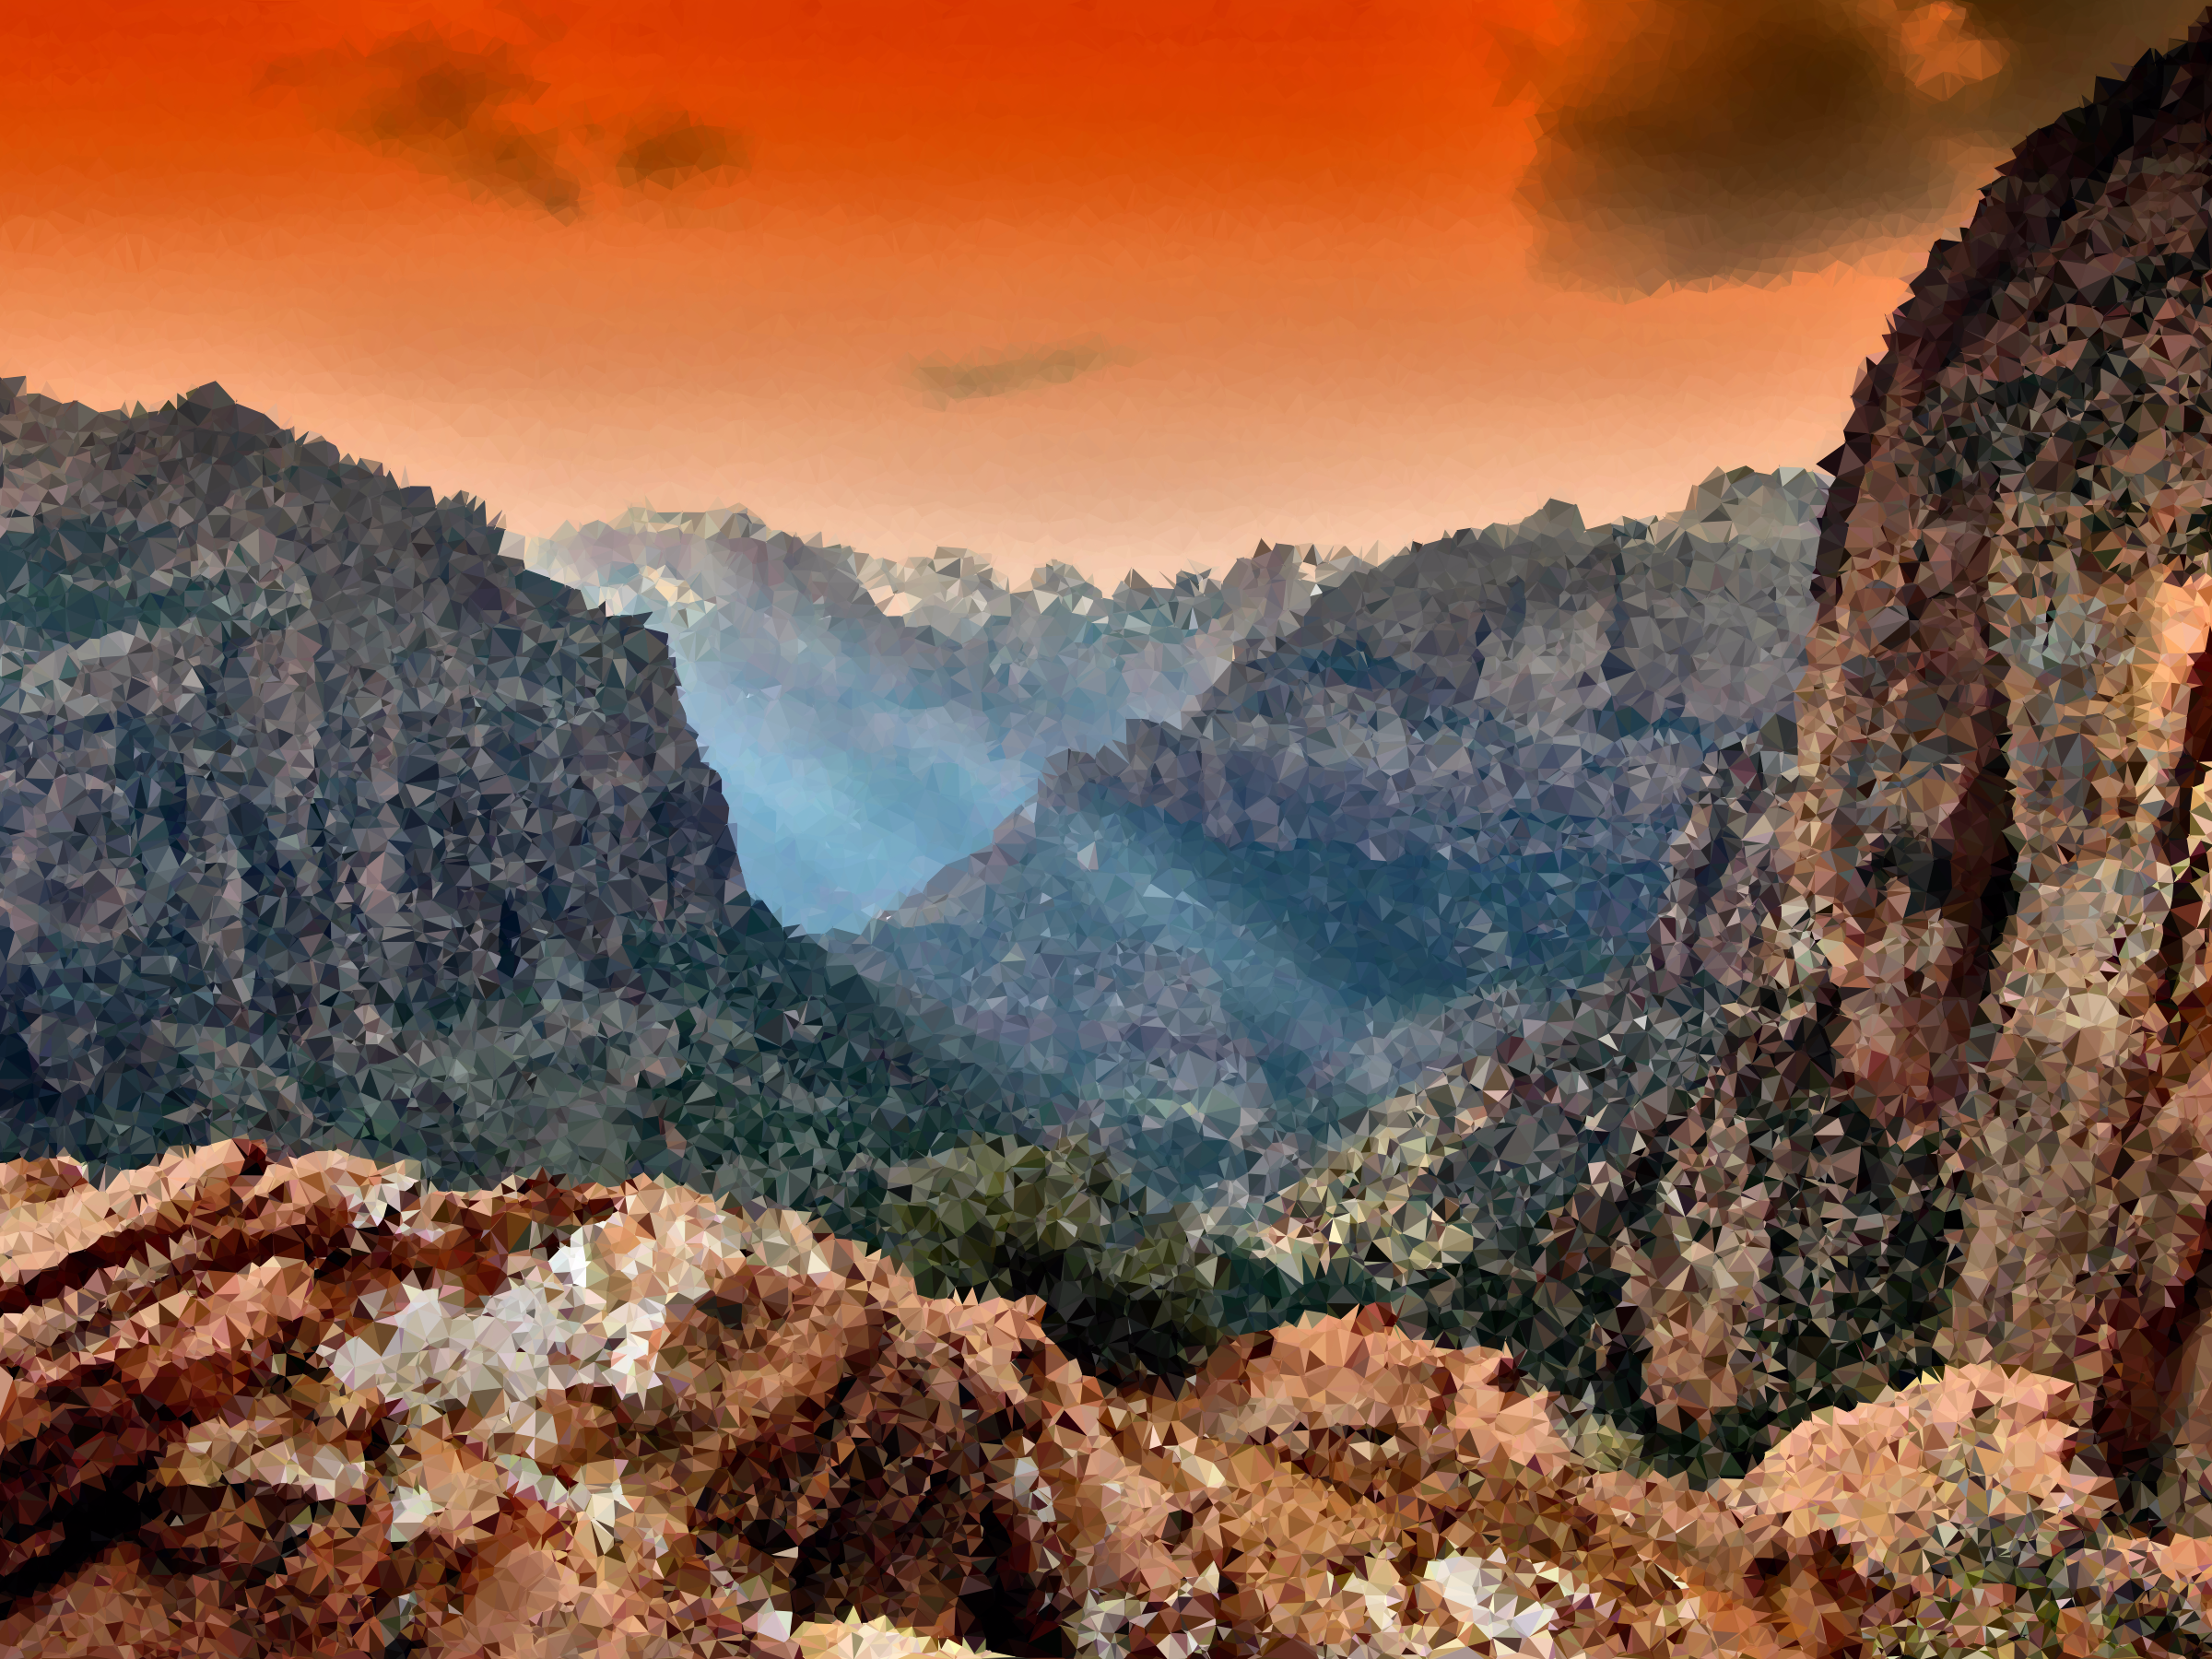 Clipart Illustration of a Formation In Zion National Park ...  |Clipart National Park Utah